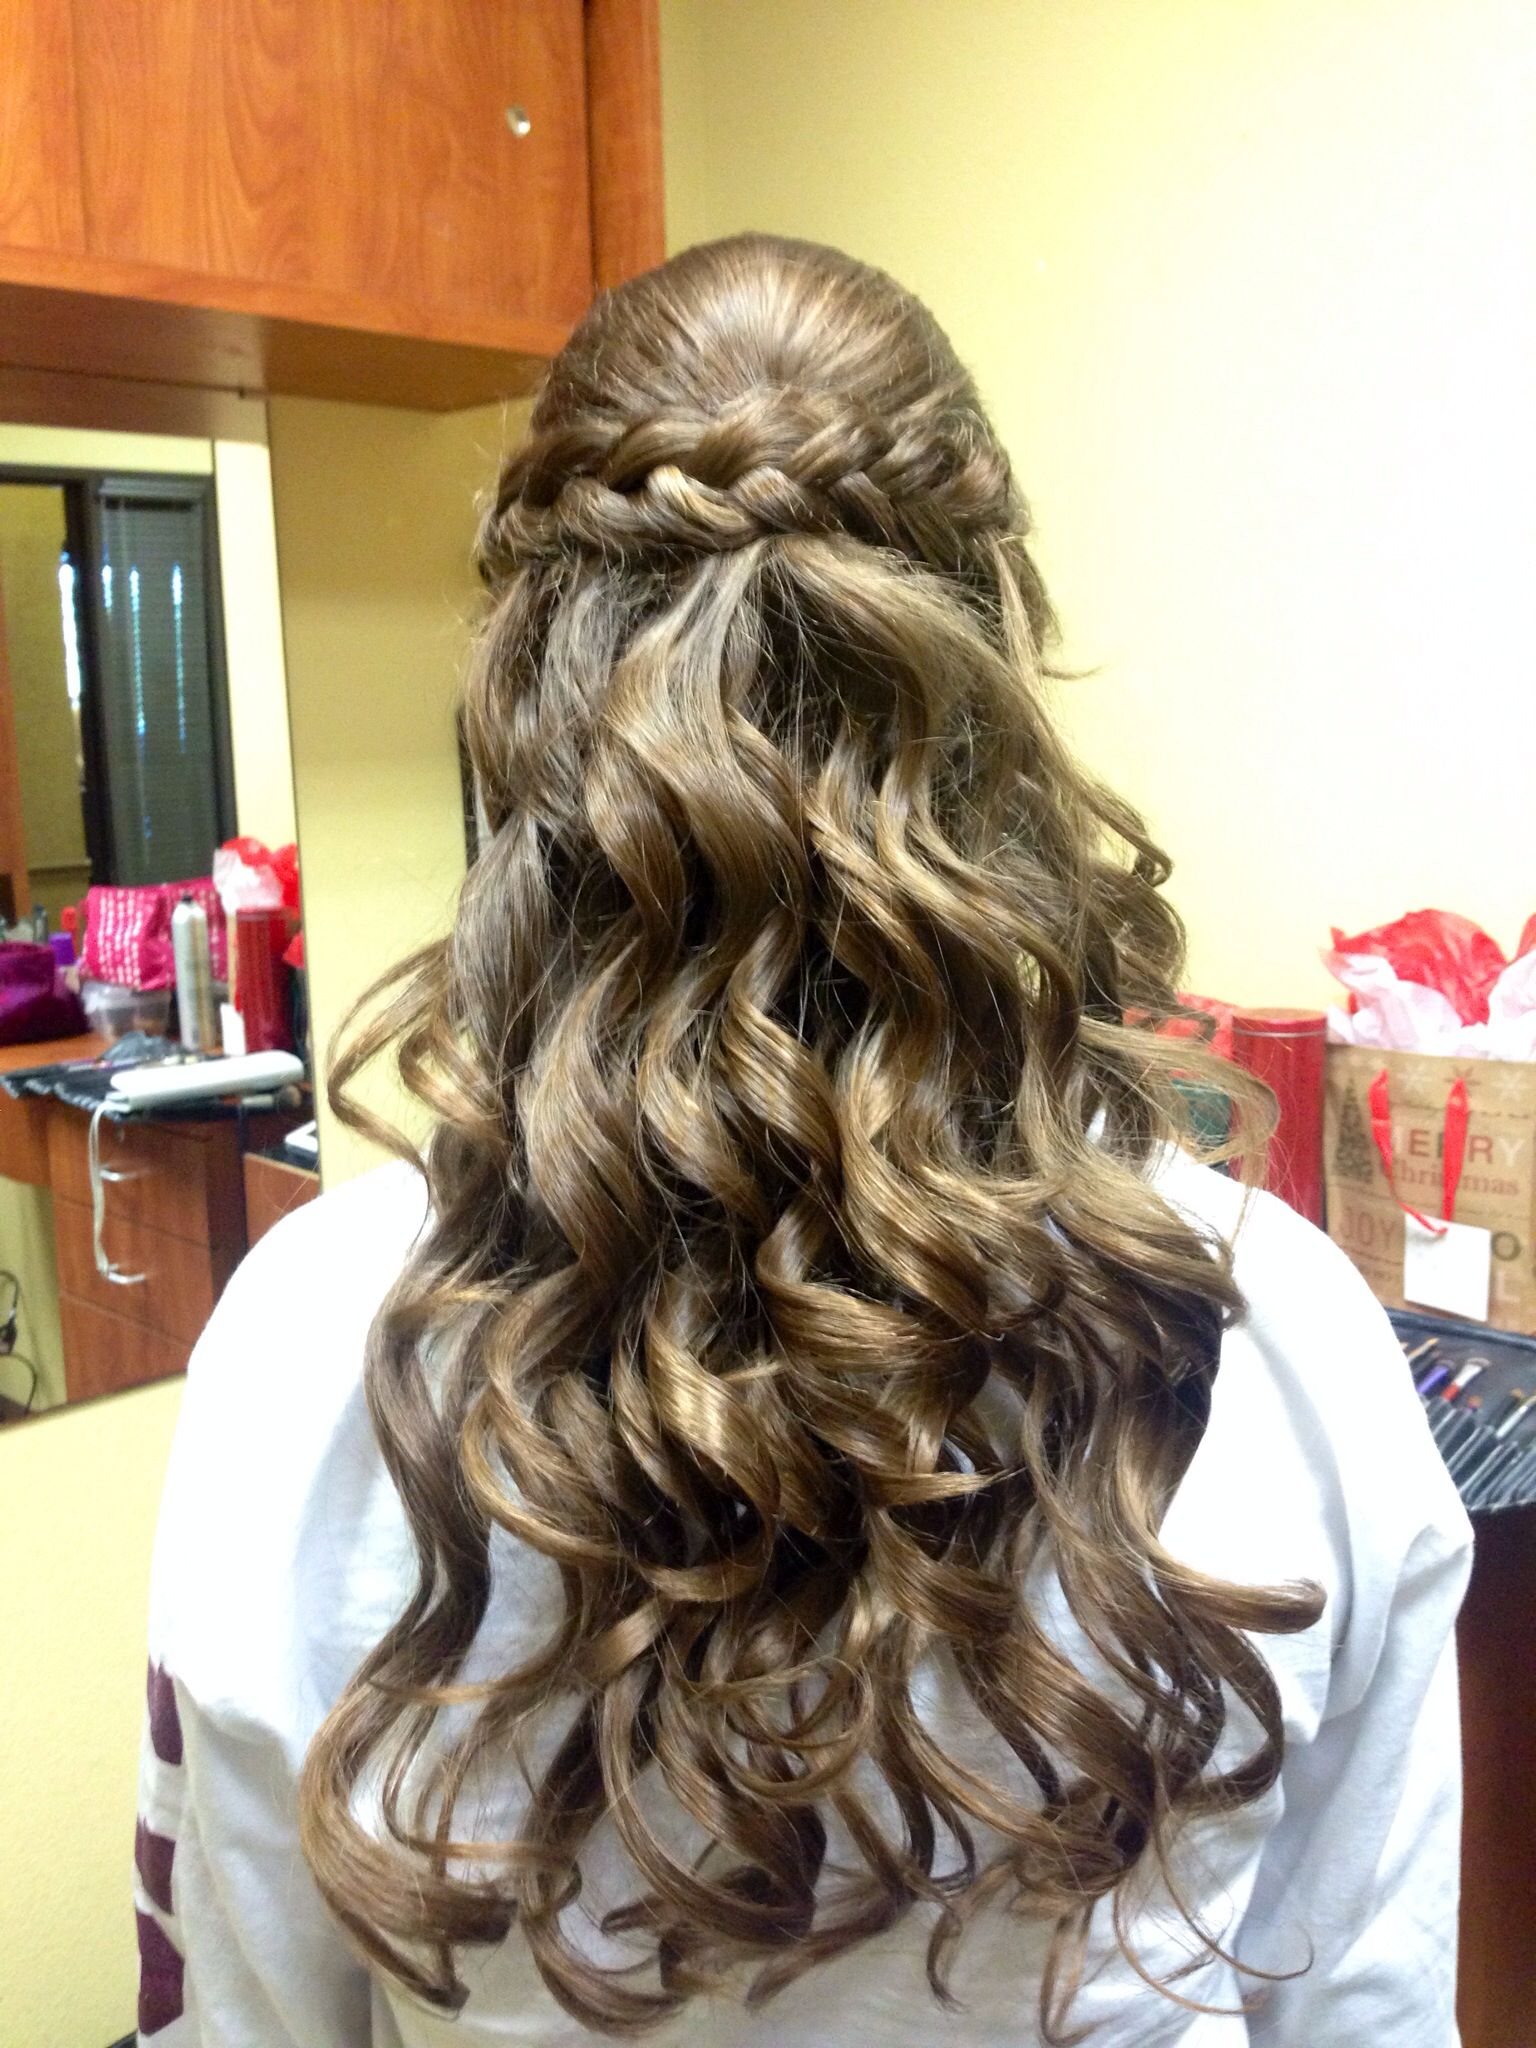 Cute Easy Hairstyles For School Dances : Half up down w braid this is my sisters hair for a